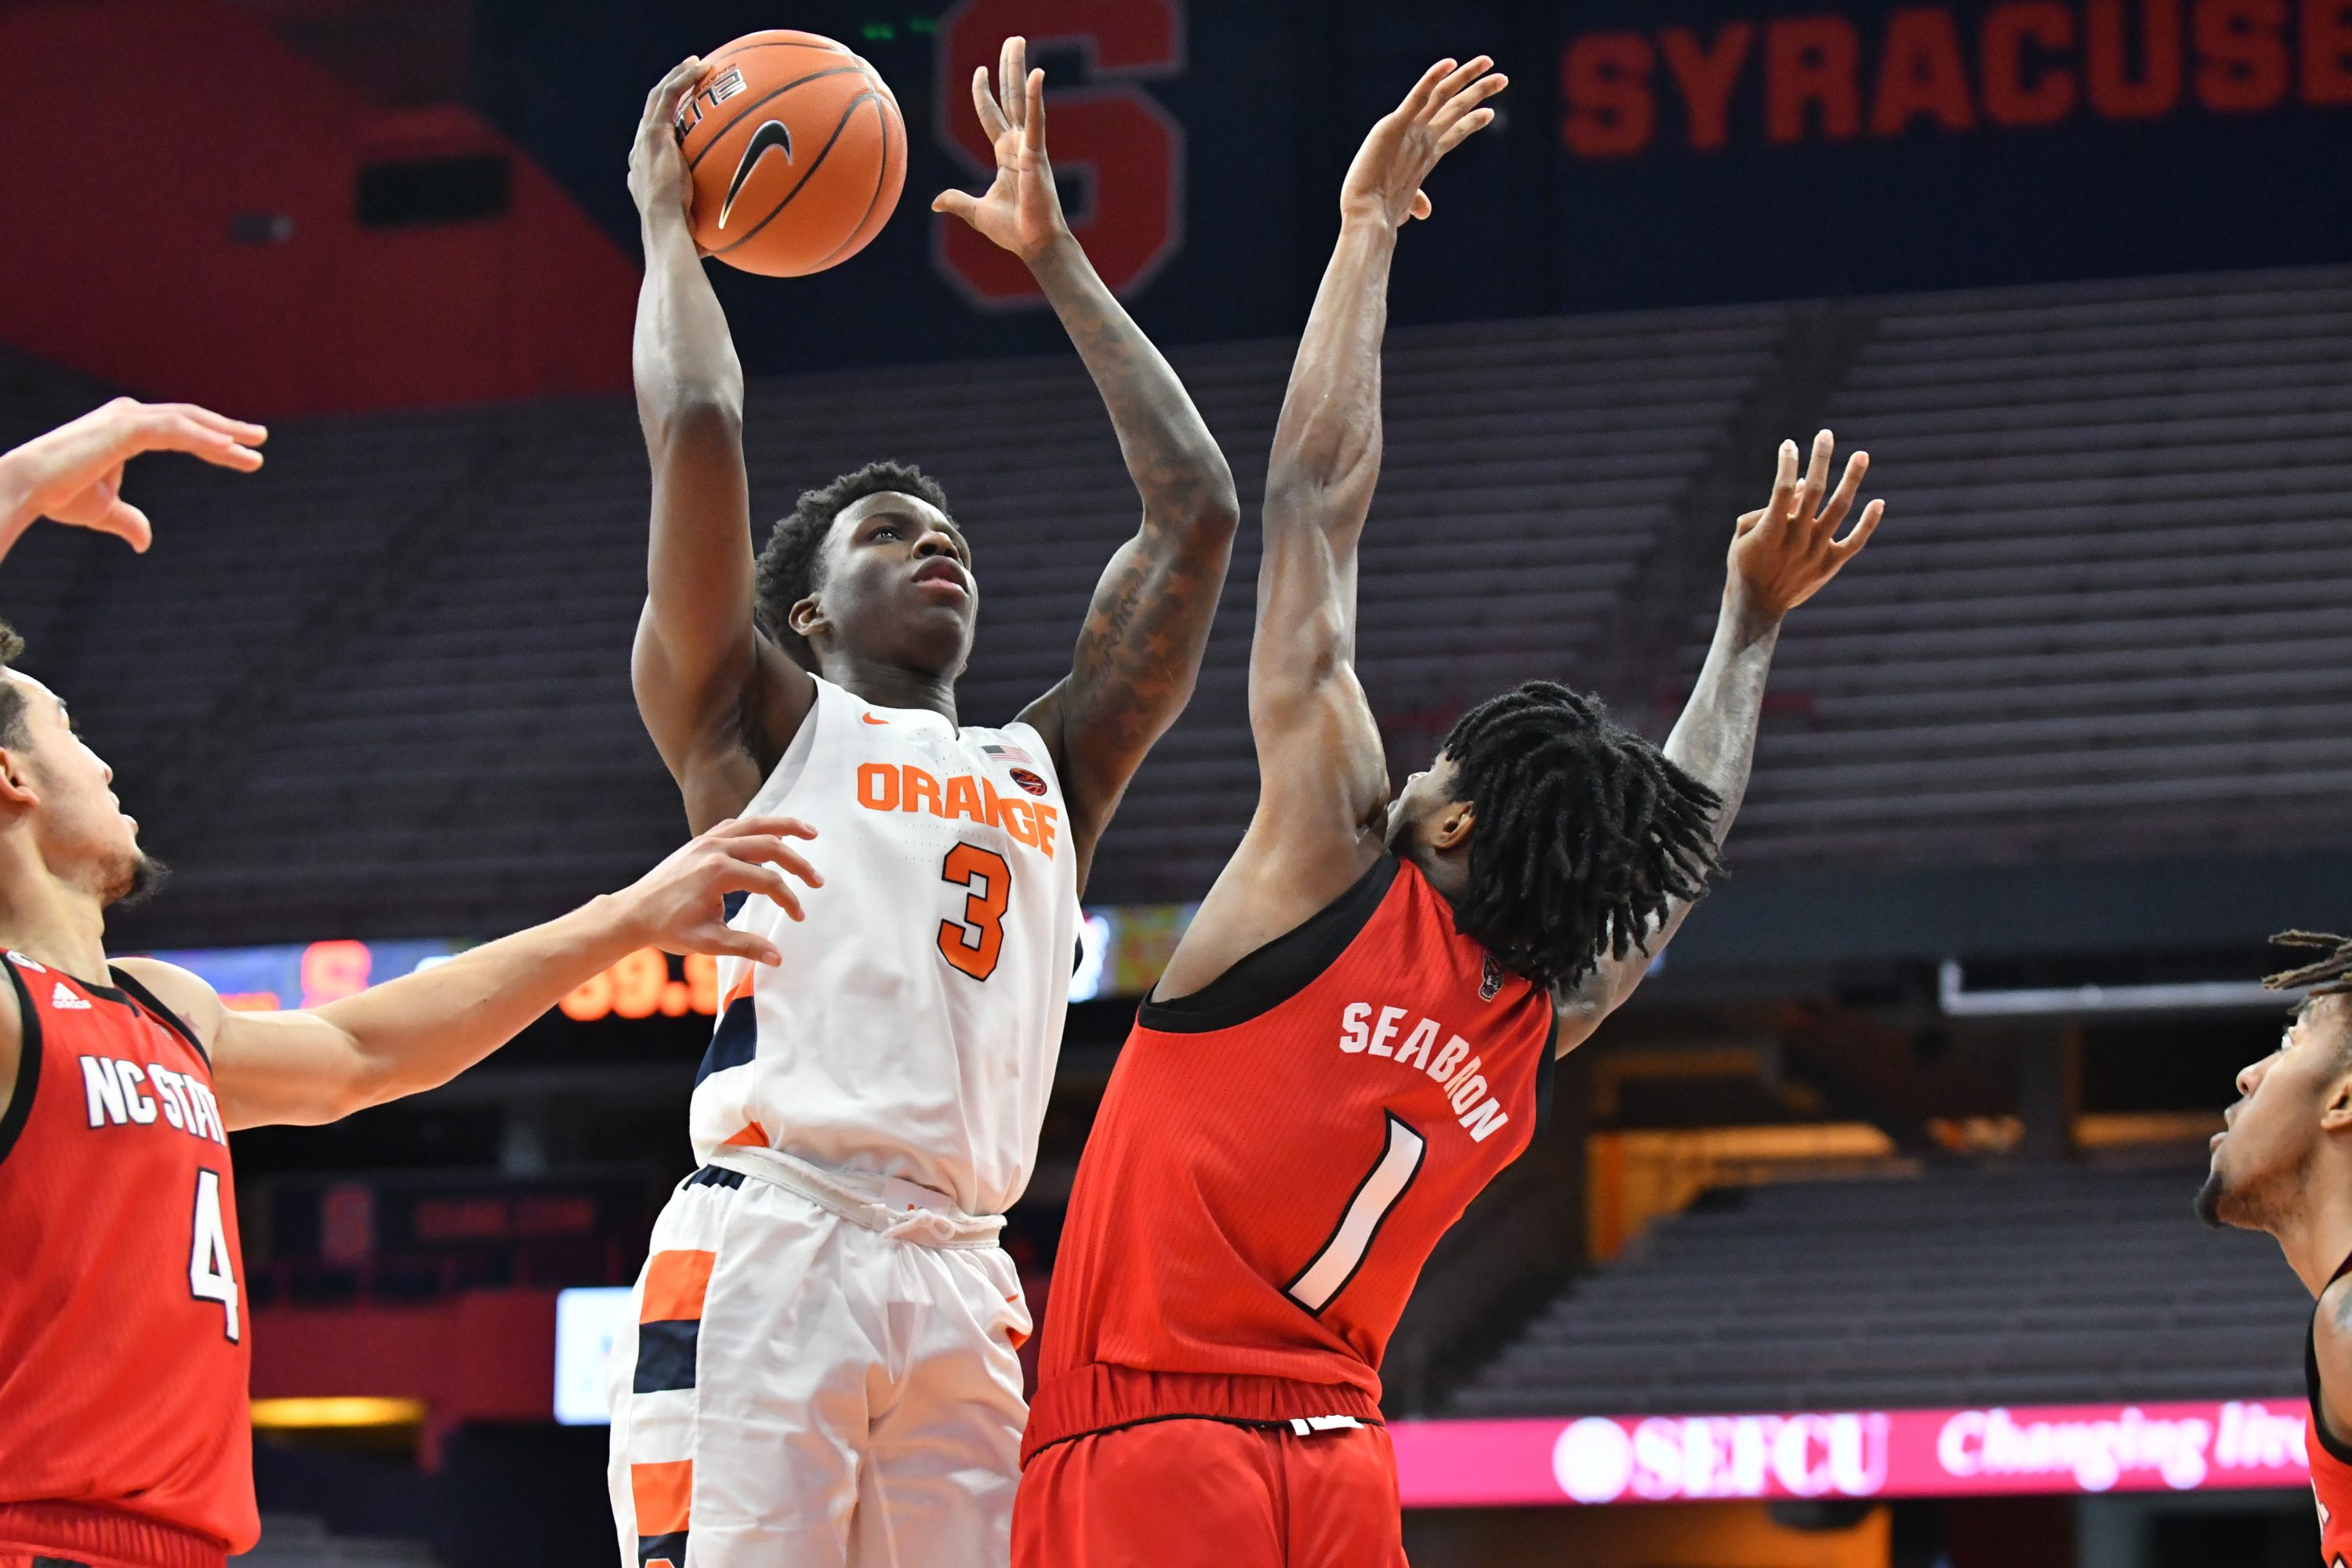 Jan 31, 2021; Syracuse, New York, USA; Syracuse Orange forward Kadary Richmond (3) shoots the ball as North Carolina State Wolfpack guard Dereon Seabron (1) defends in the first half at the Carrier Dome. Mandatory Credit: Mark Konezny-USA TODAY Sports